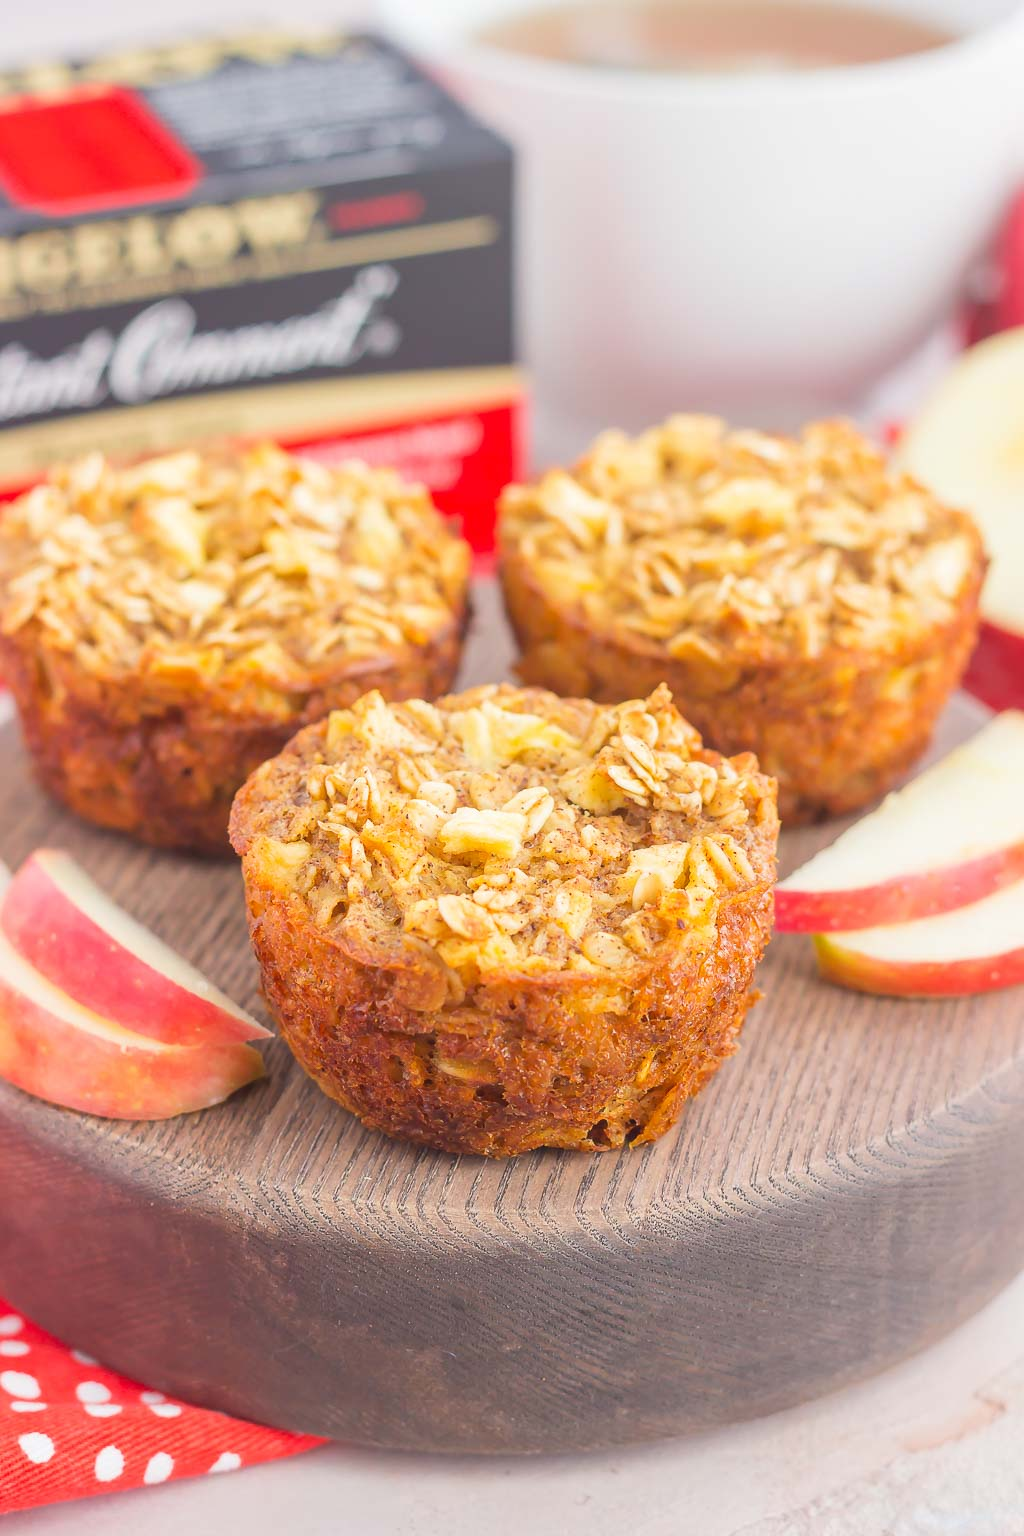 These Apple Cinnamon Baked Oatmeal Cups are the perfect, on-go-the breakfast to enjoy any day of the week. Fresh apples, a sprinkling of cinnamon, and hearty oats make a deliciously cozy dish to enjoy throughout the season!